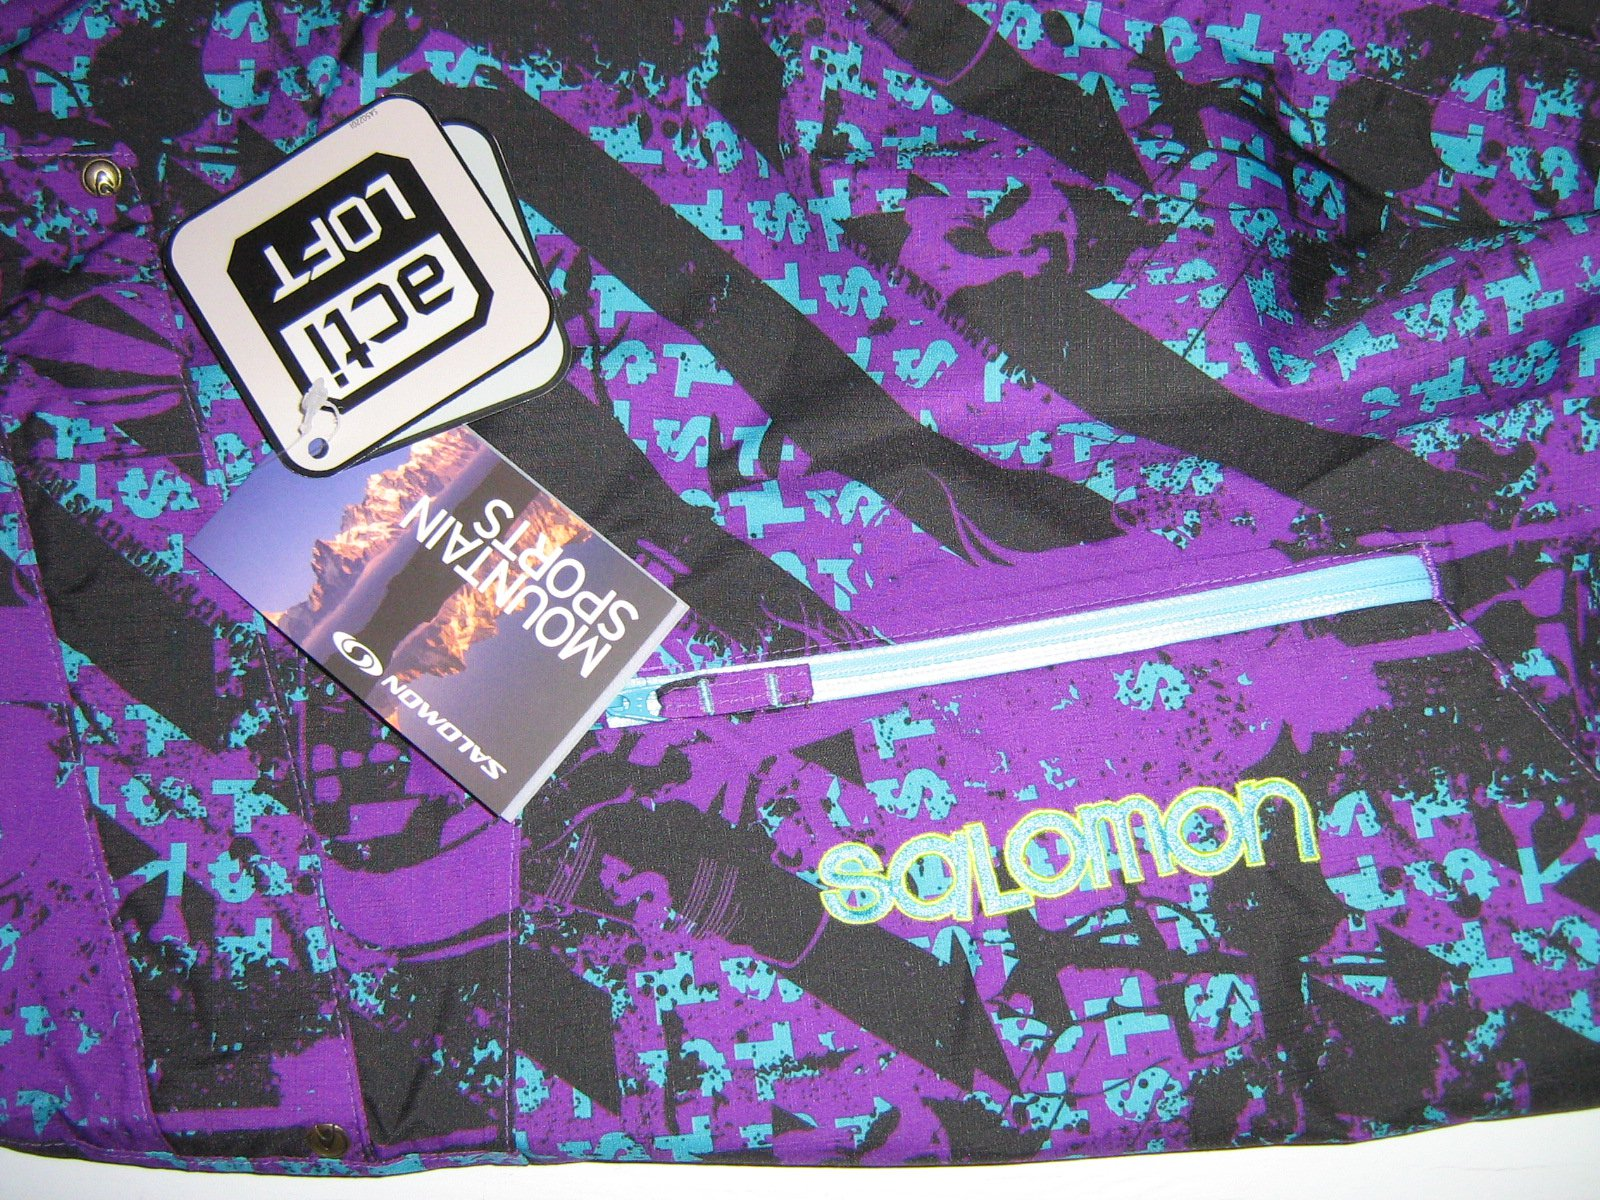 Salomon tags